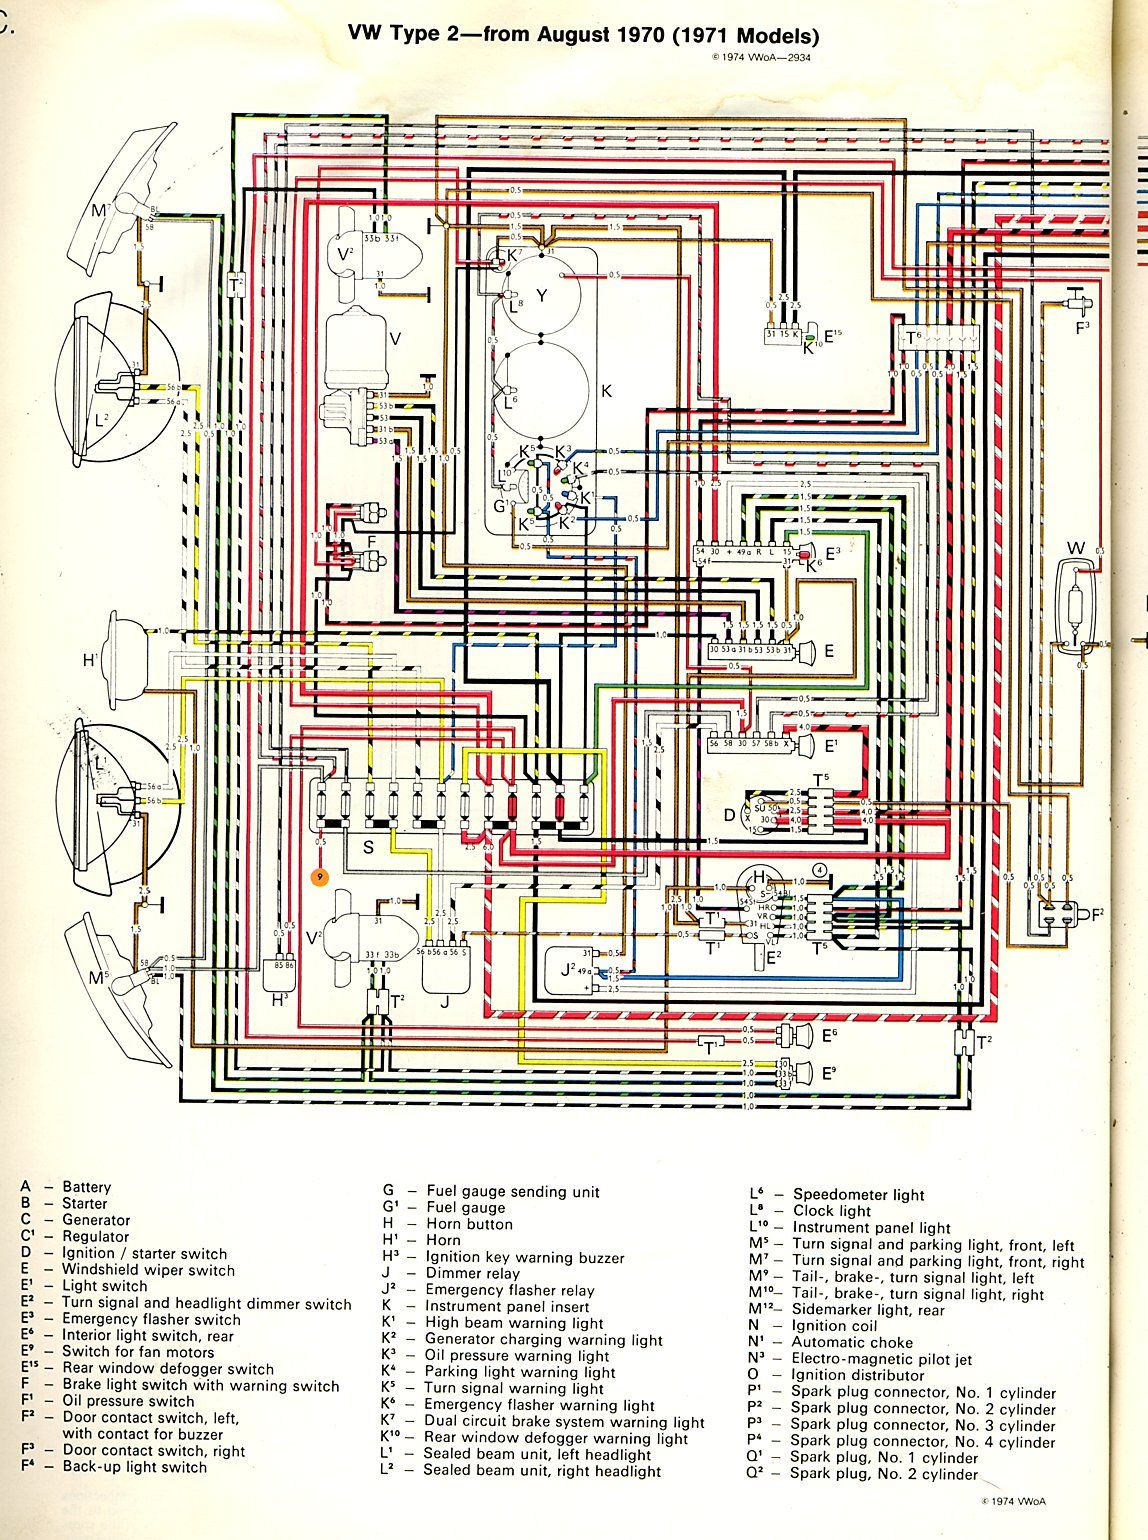 1971 vw bus wiring diagram another blog about wiring diagram u2022 rh ok2  infoservice ru Bluebird